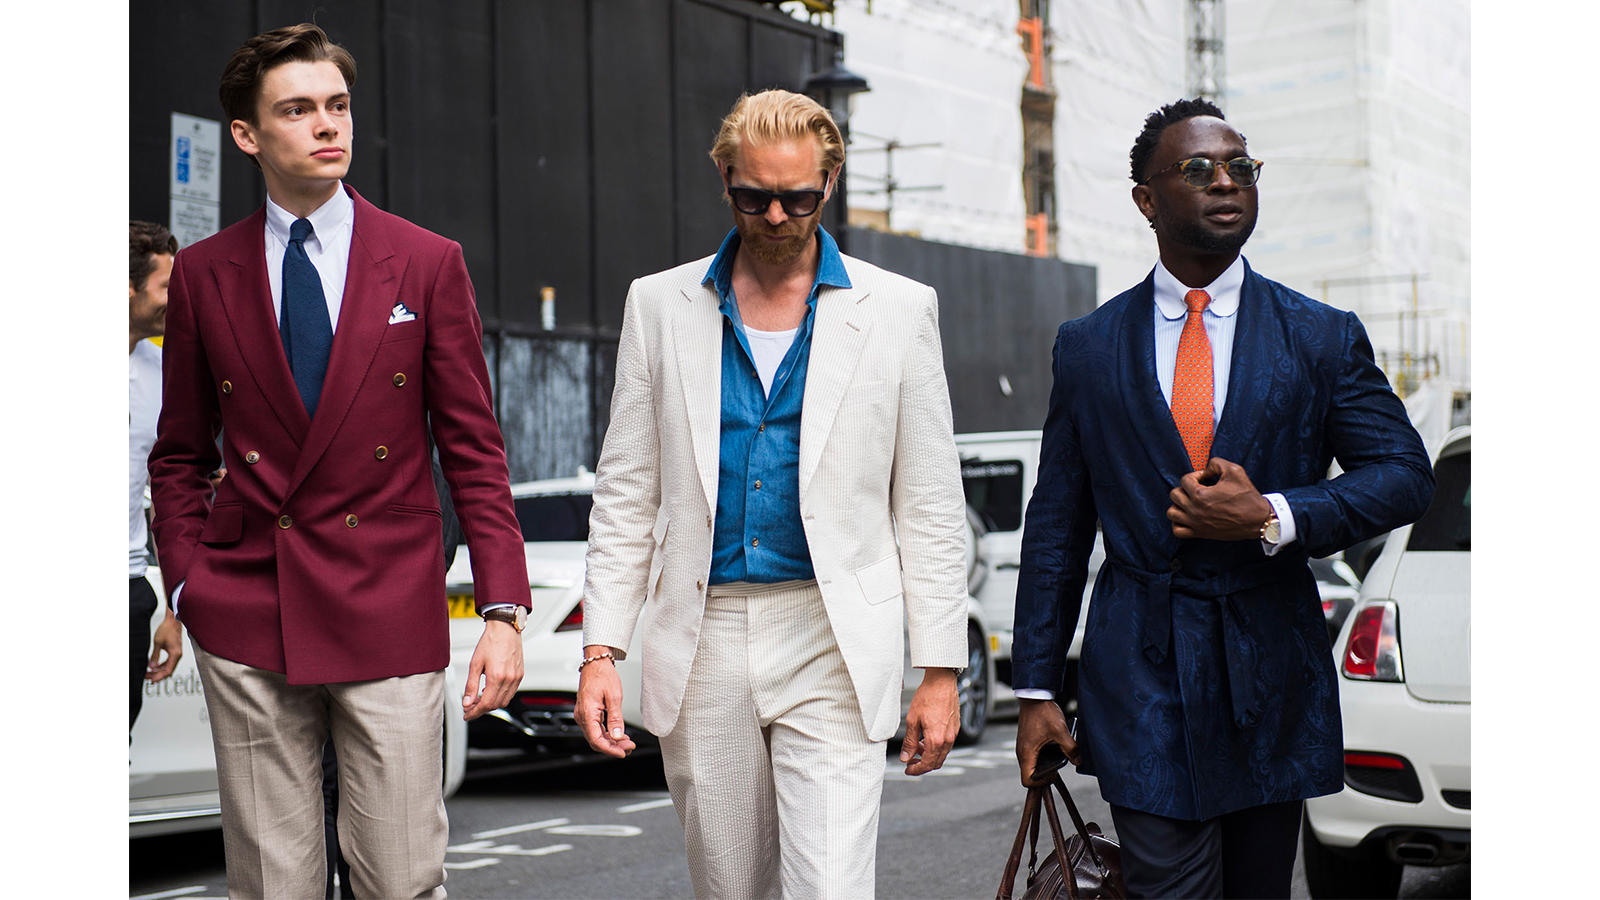 7 style tips for tall men - you can't go wrong with a suit